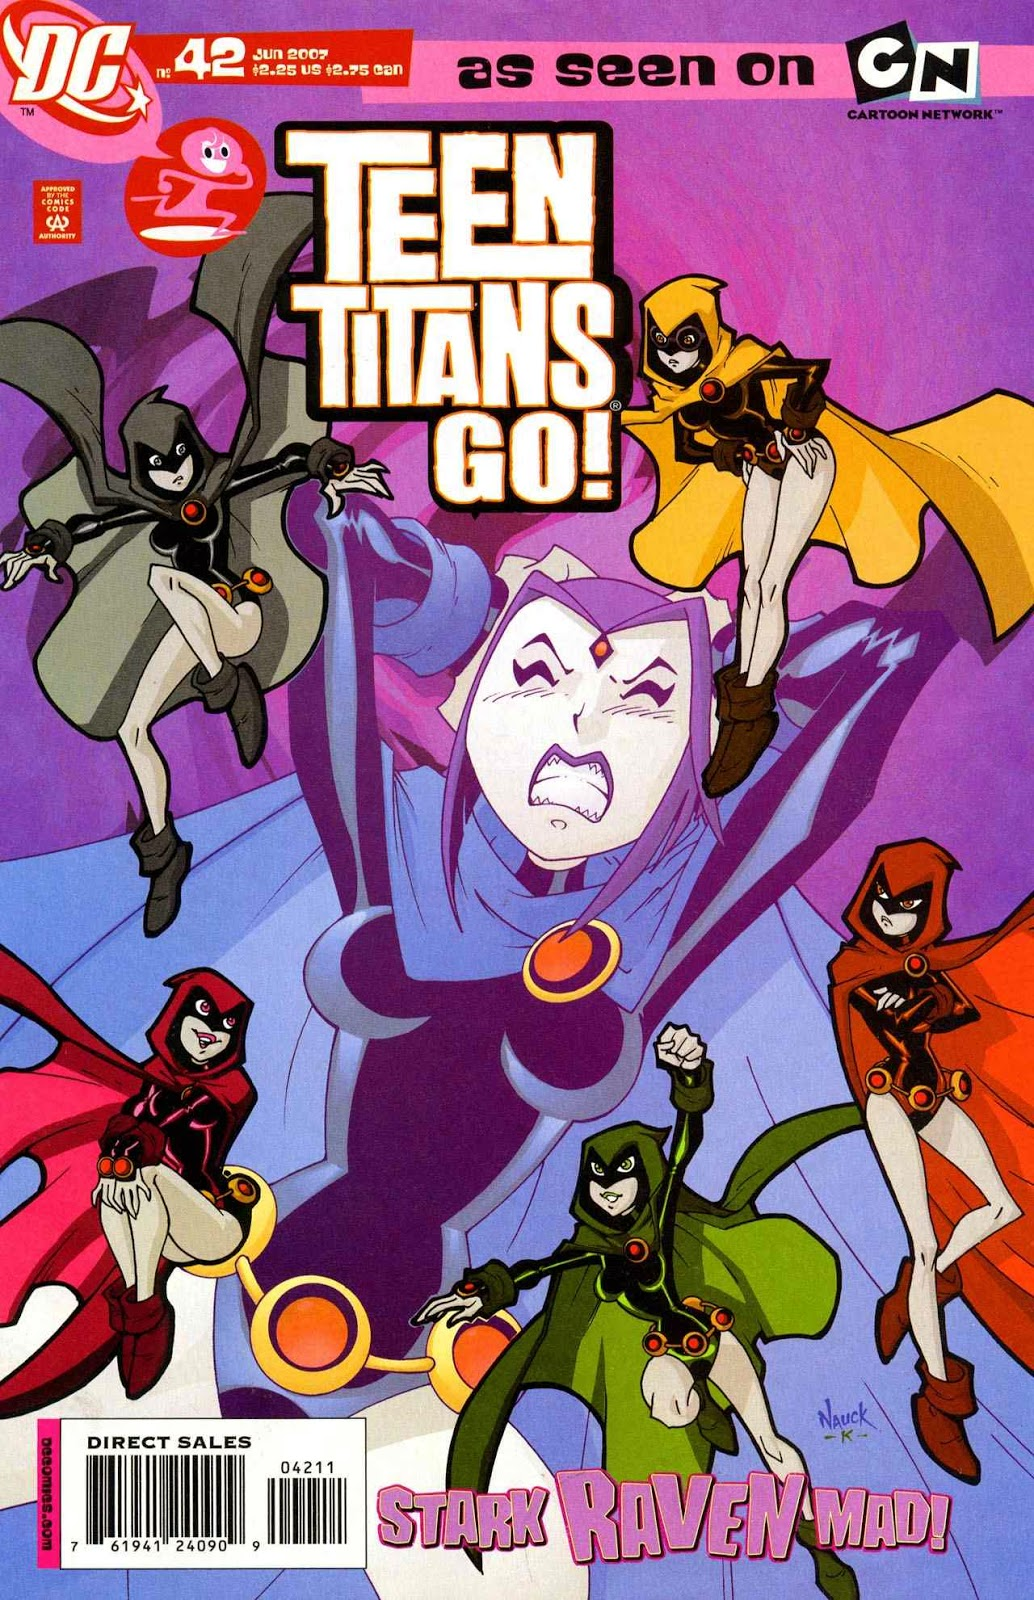 Teen titans book